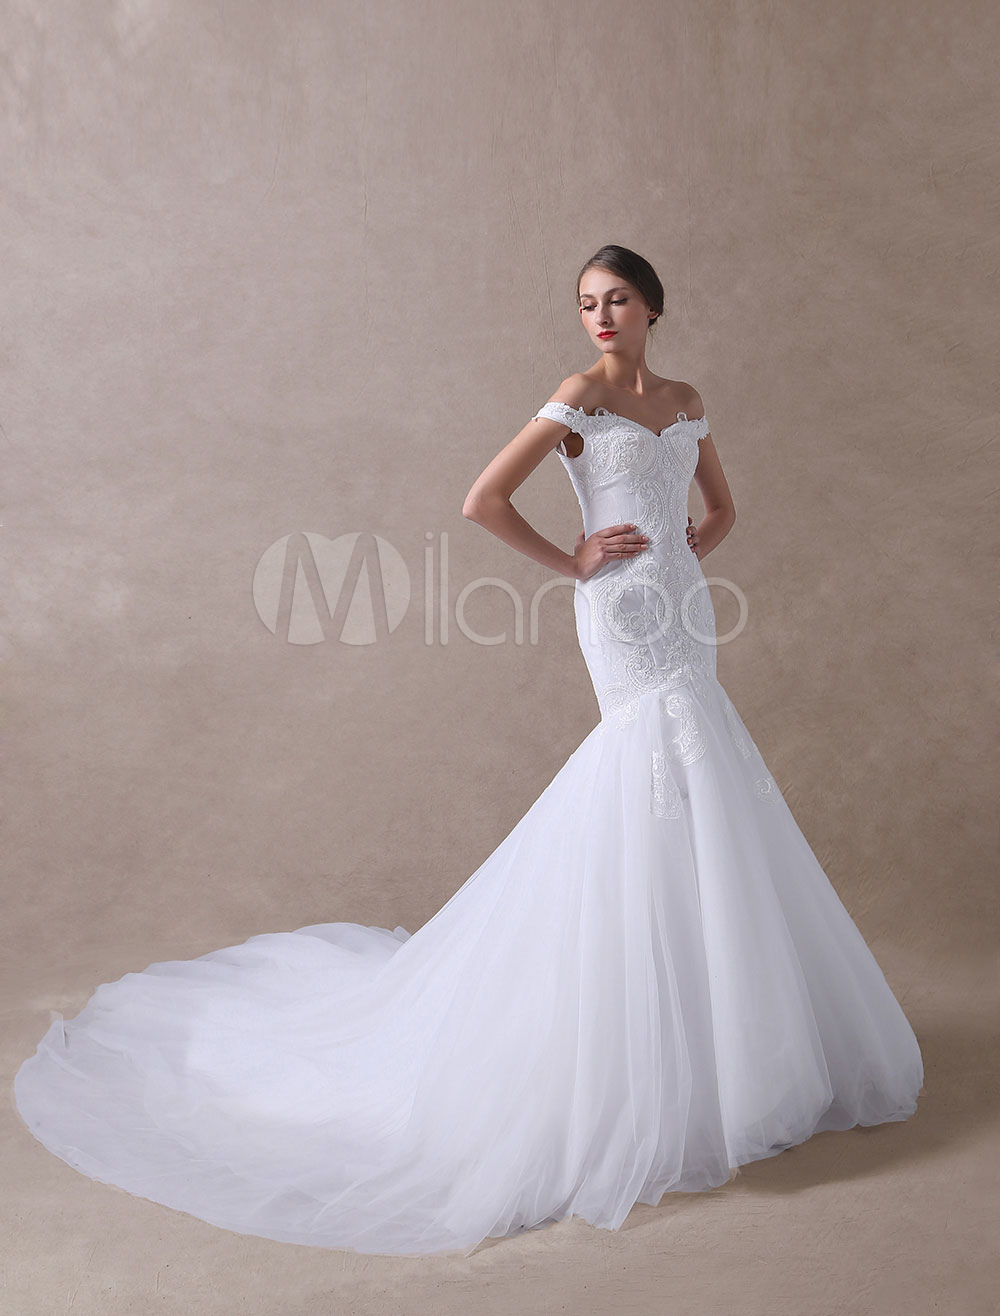 Wedding Dresses Mermaid Off The Shoulder Bridal Dress Lace Applique Tulle Wedding Gowns With Train